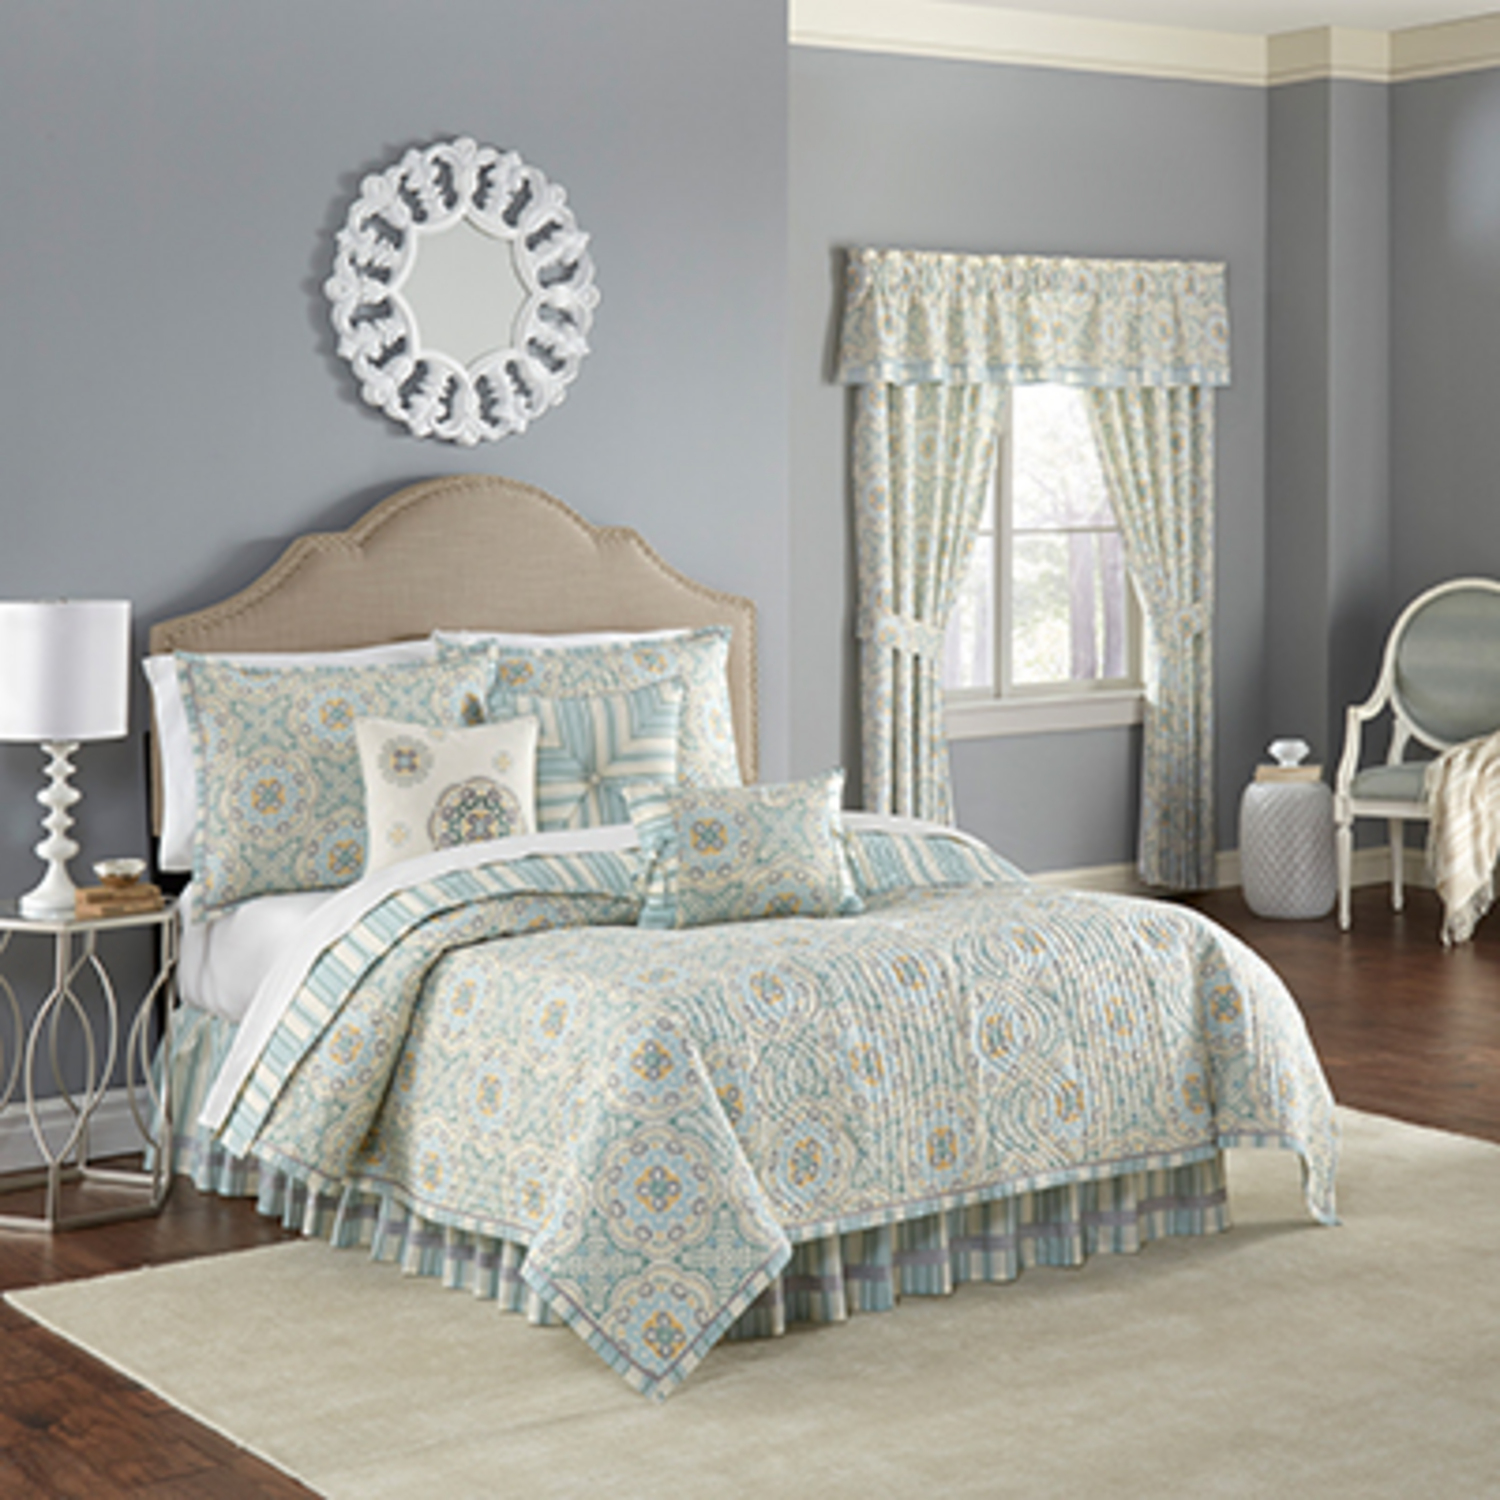 Astrid By Waverly Bedding Collection Beddingsuperstore Com